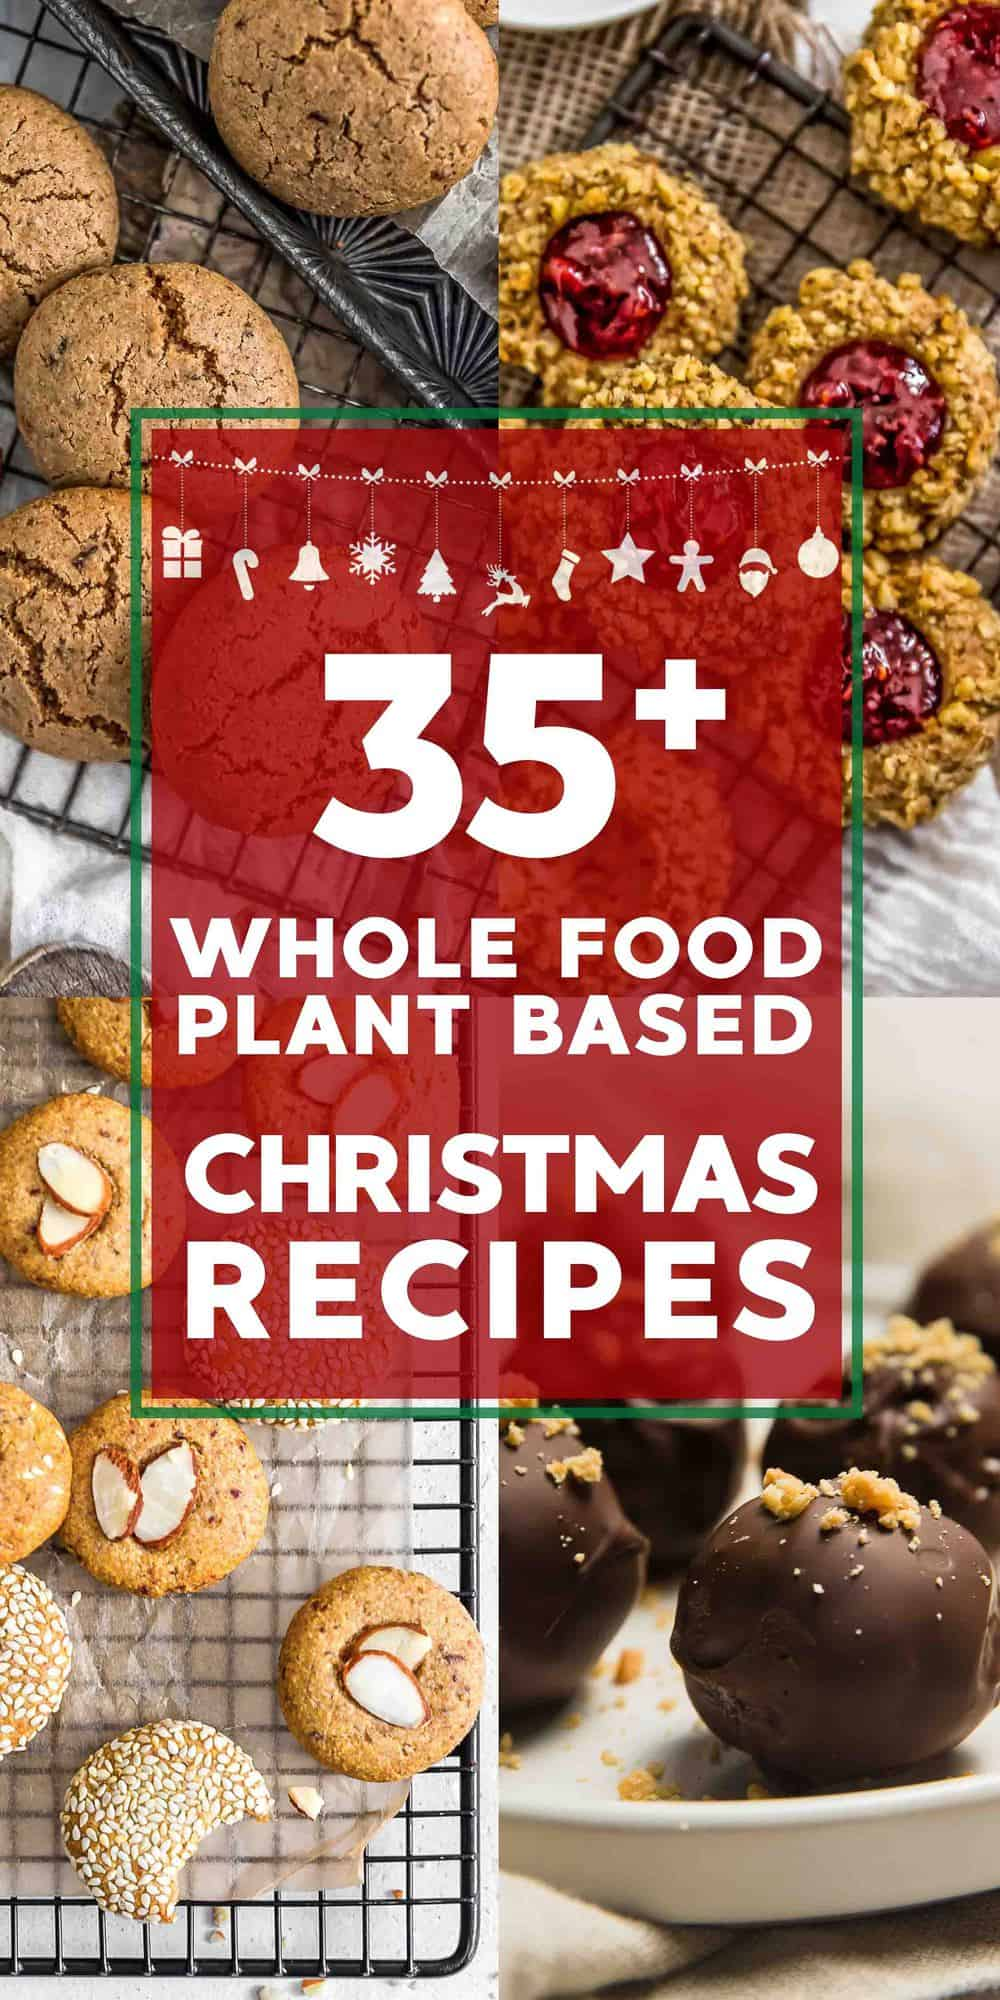 35 Whole Food Plant Based Christmas Recipes with text description